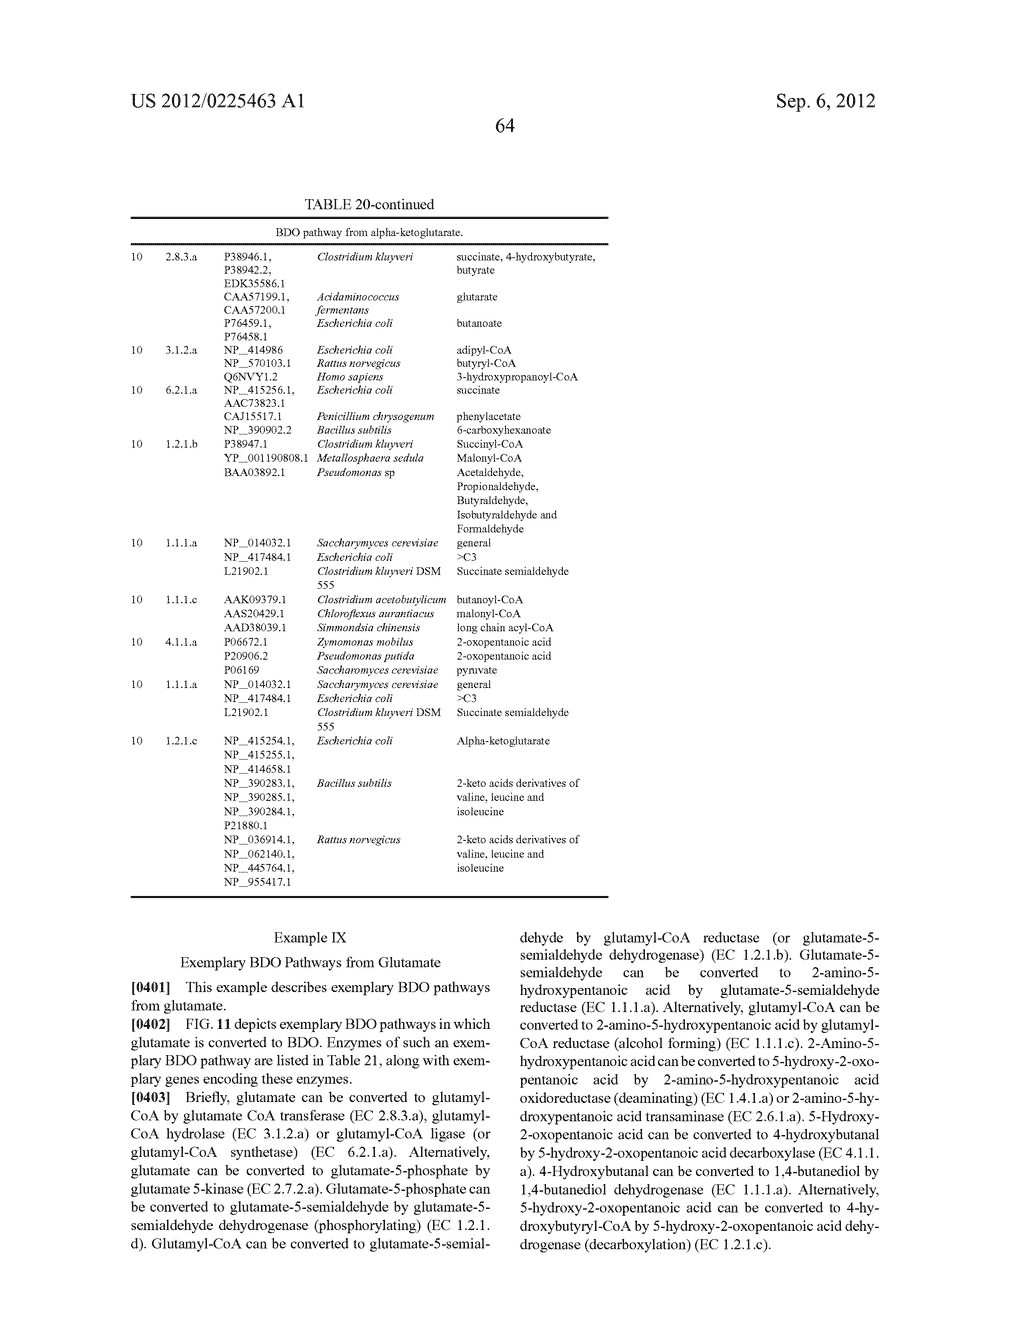 MICROORGANISMS FOR THE PRODUCTION OF 1,4-BUTANEDIOL AND RELATED METHODS - diagram, schematic, and image 126